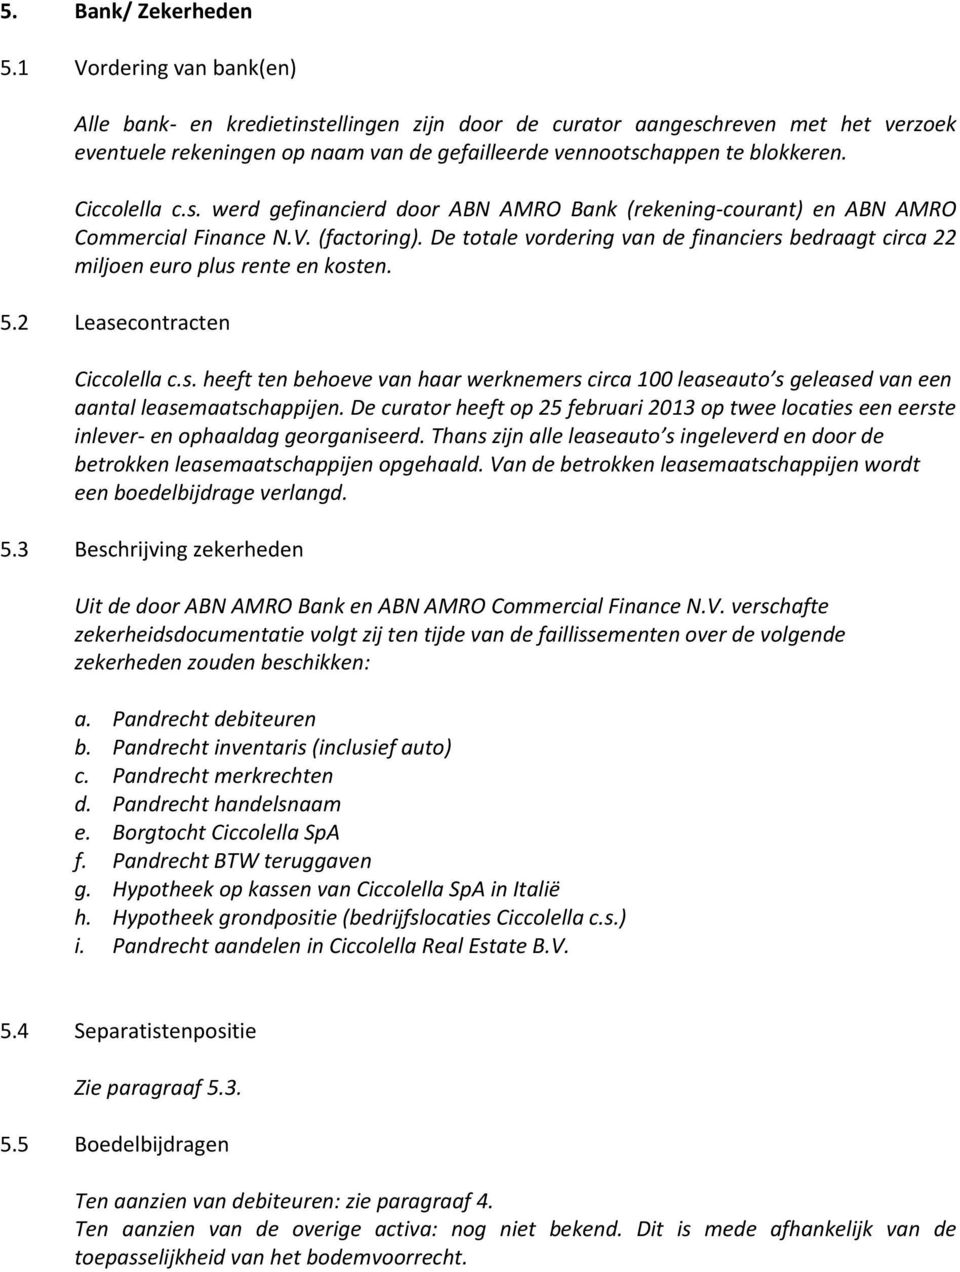 Ciccolella c.s. werd gefinancierd door ABN AMRO Bank (rekening-courant) en ABN AMRO Commercial Finance N.V. (factoring).